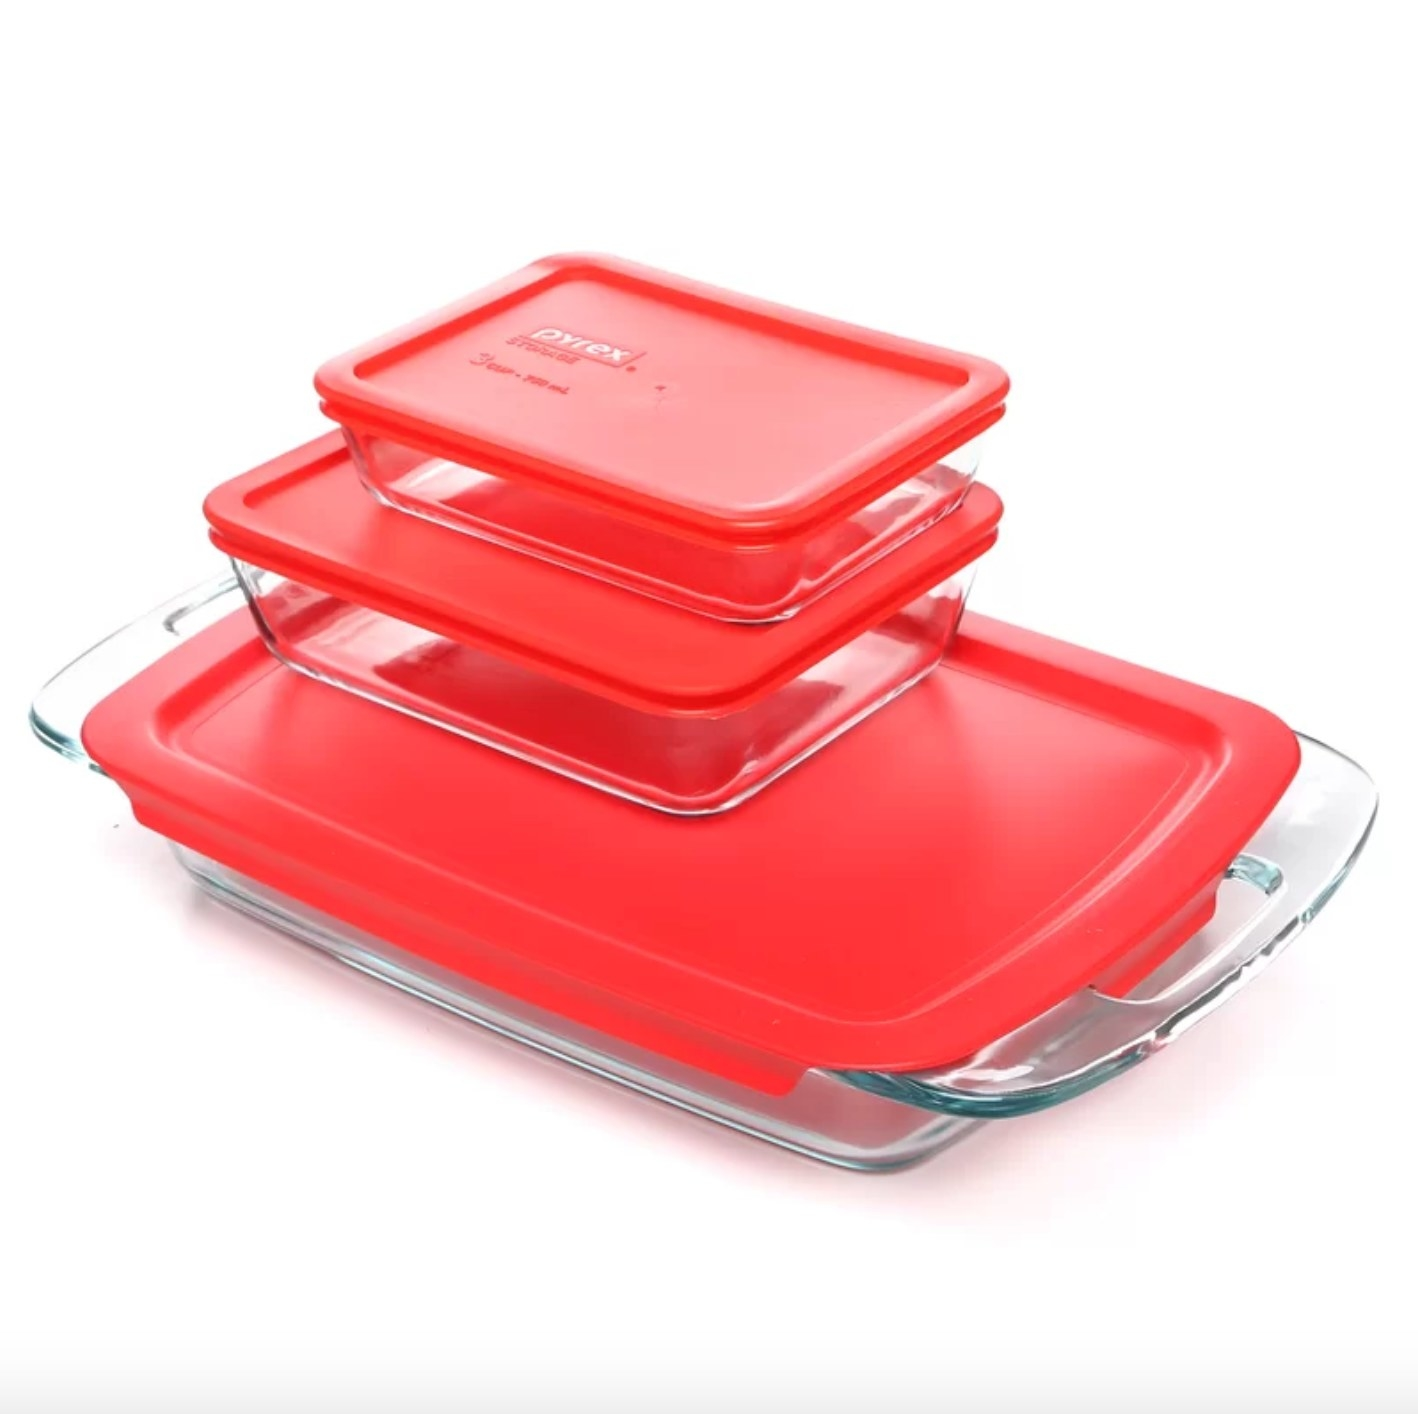 The six-piece pyrex set in red